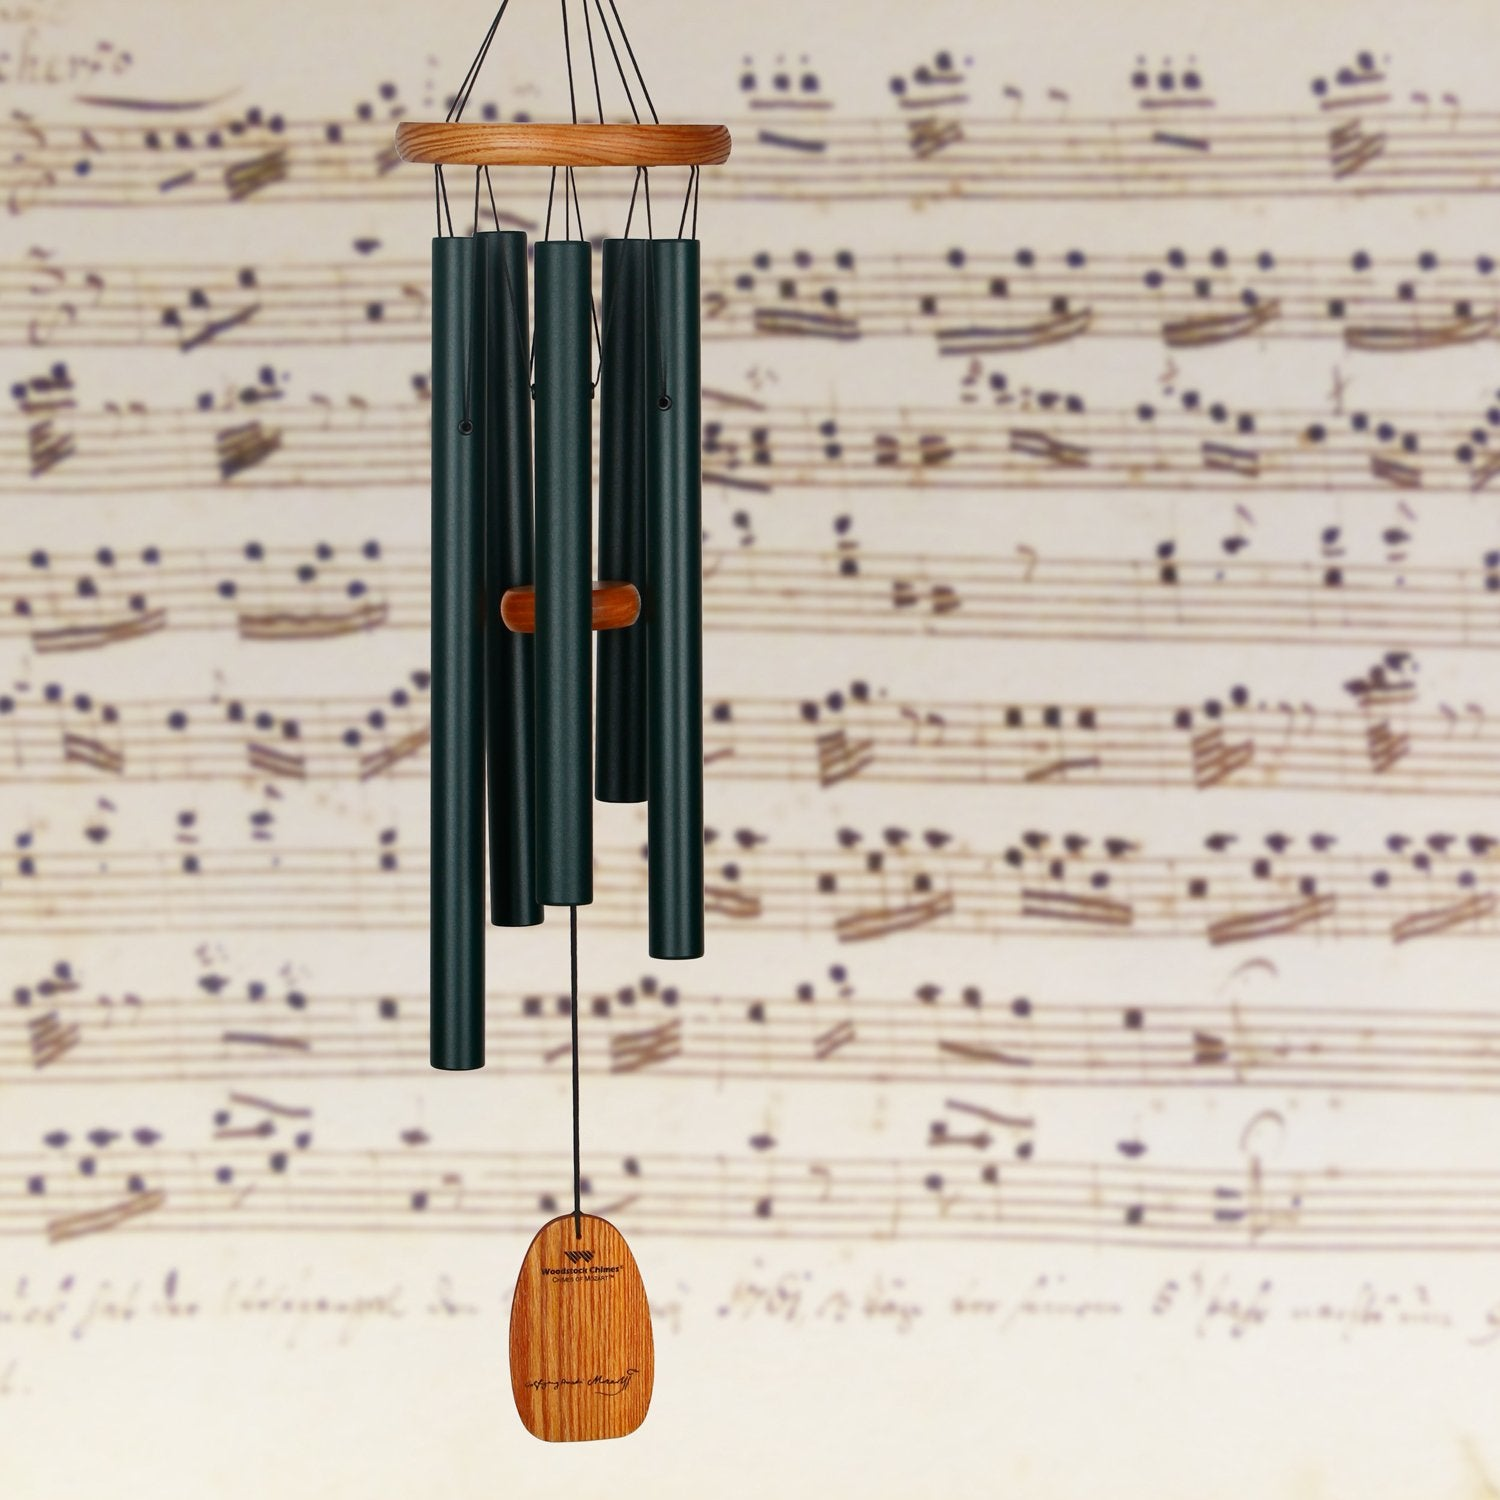 Chimes of Mozart - Medium lifestyle image